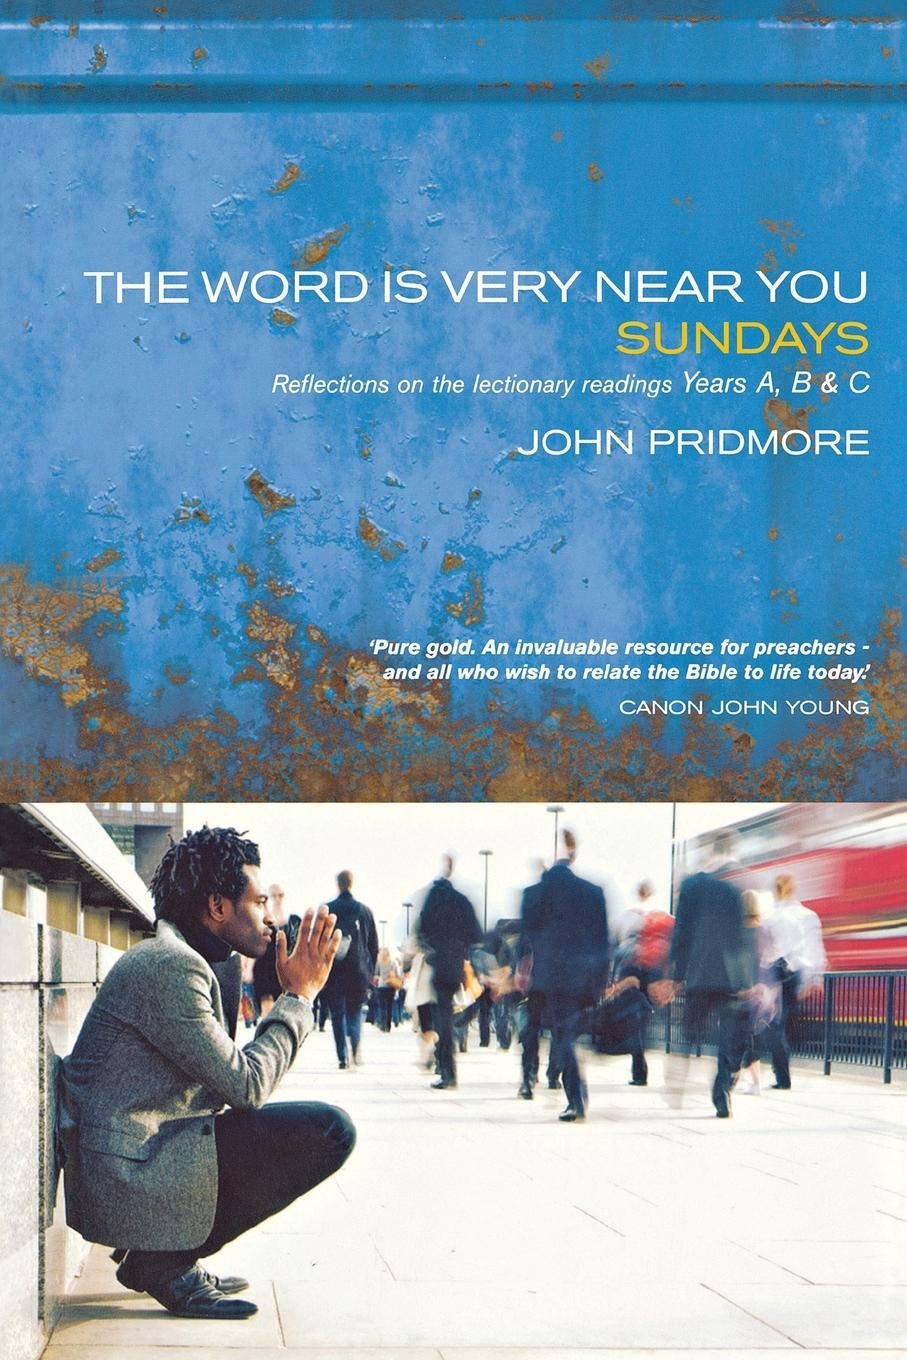 The Word is Very Near You: A guide to preaching the lectionary - Years A, B & C